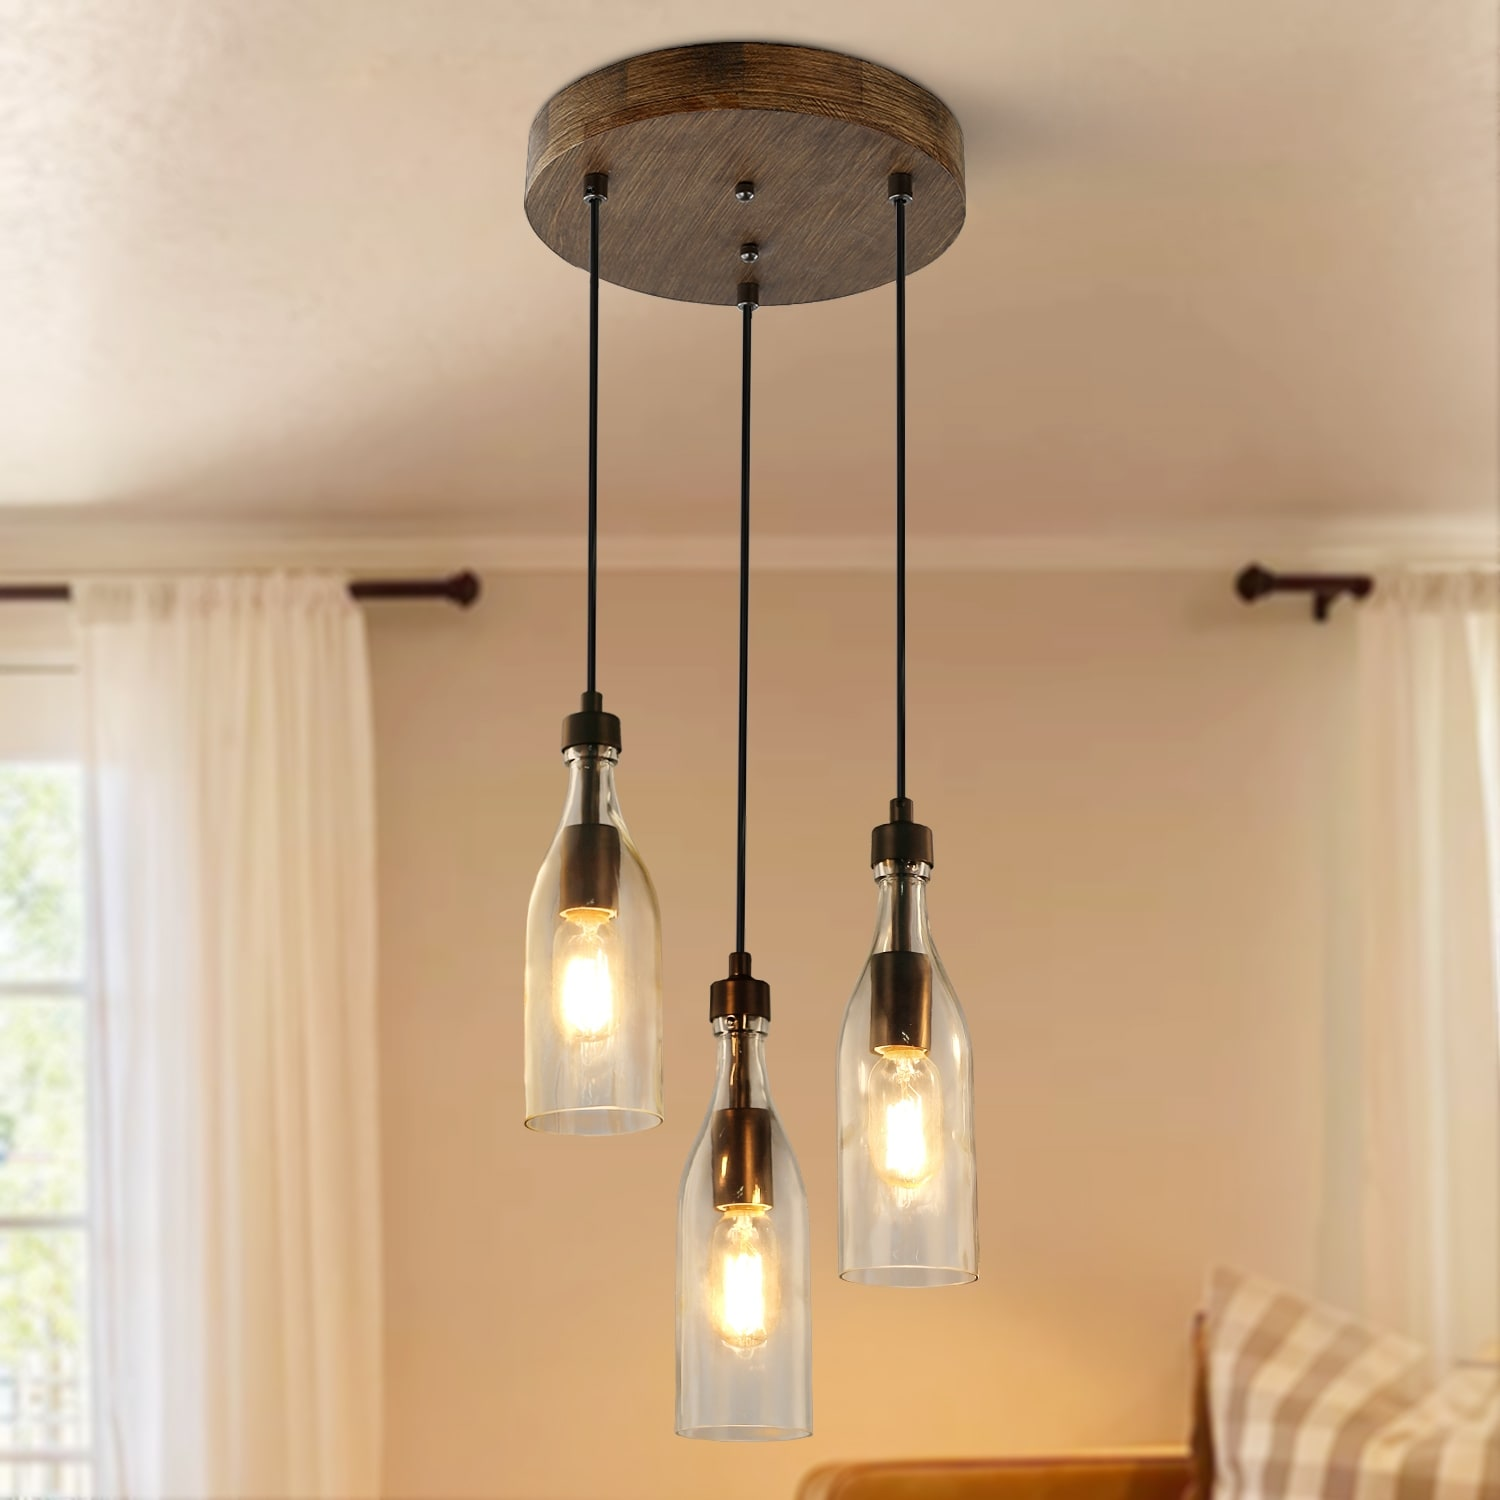 Farmhouse 3 Lights Kitchen Island Lighting Pendant Chandelier Ceiling Lamp D11 X H11 2 On Sale Overstock 27621032